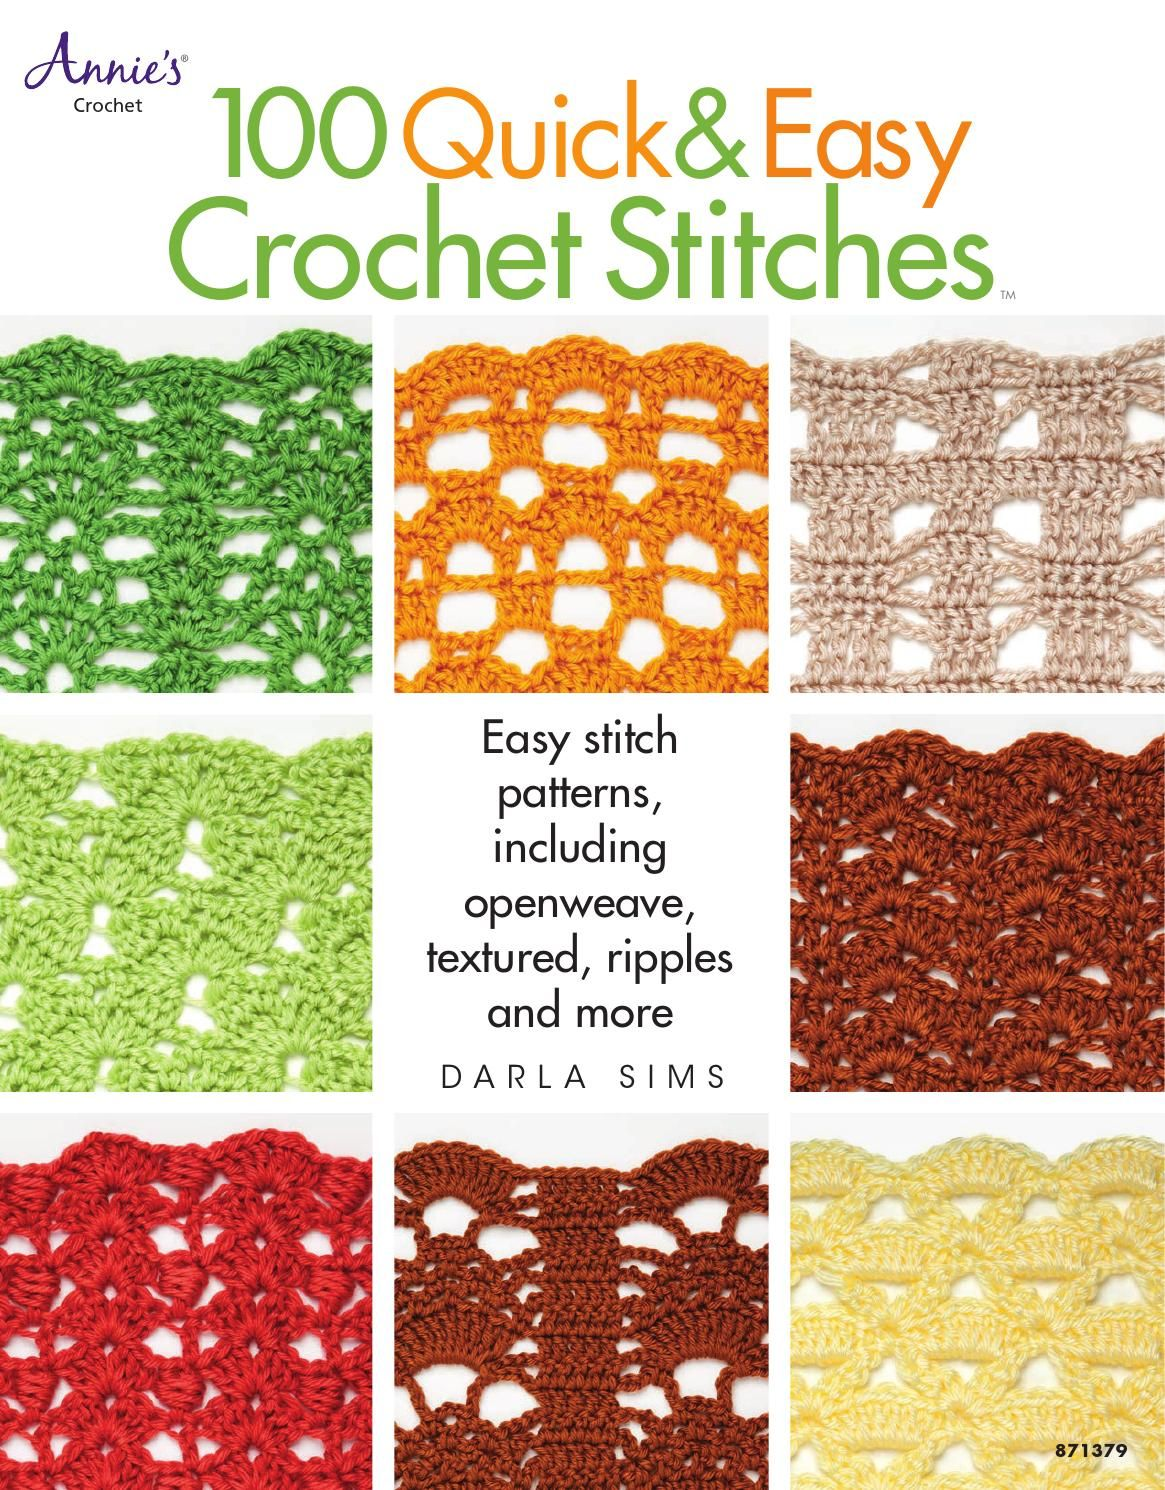 100 Häkelmuster | Häkelmuster/Crochet Stitches by Tweek | Pinterest ...